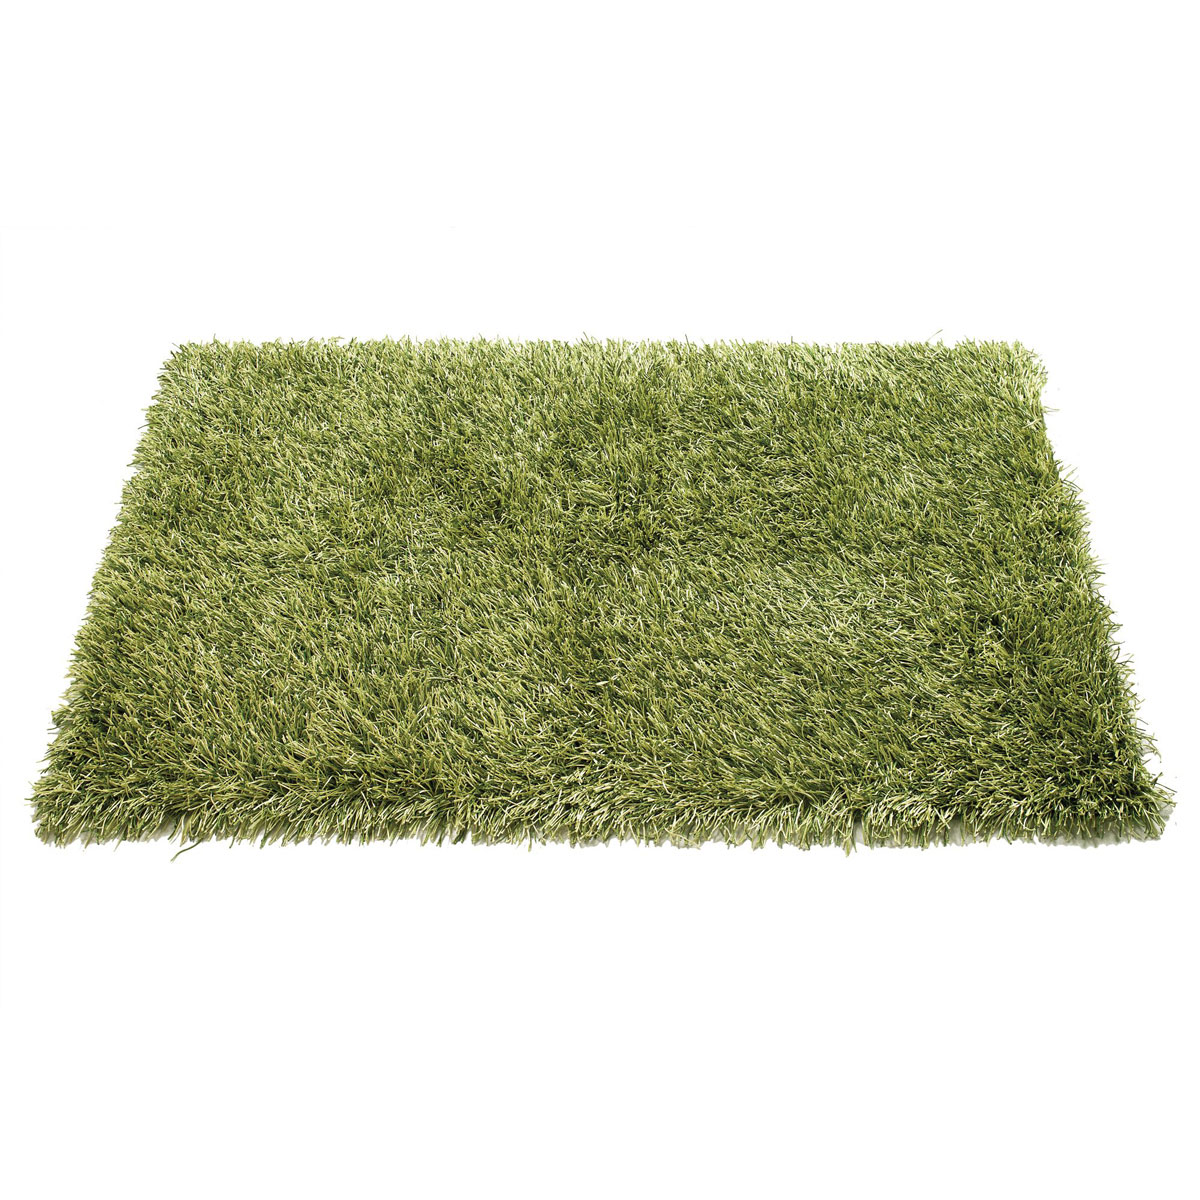 square shag rugs in green for wall decor ideas